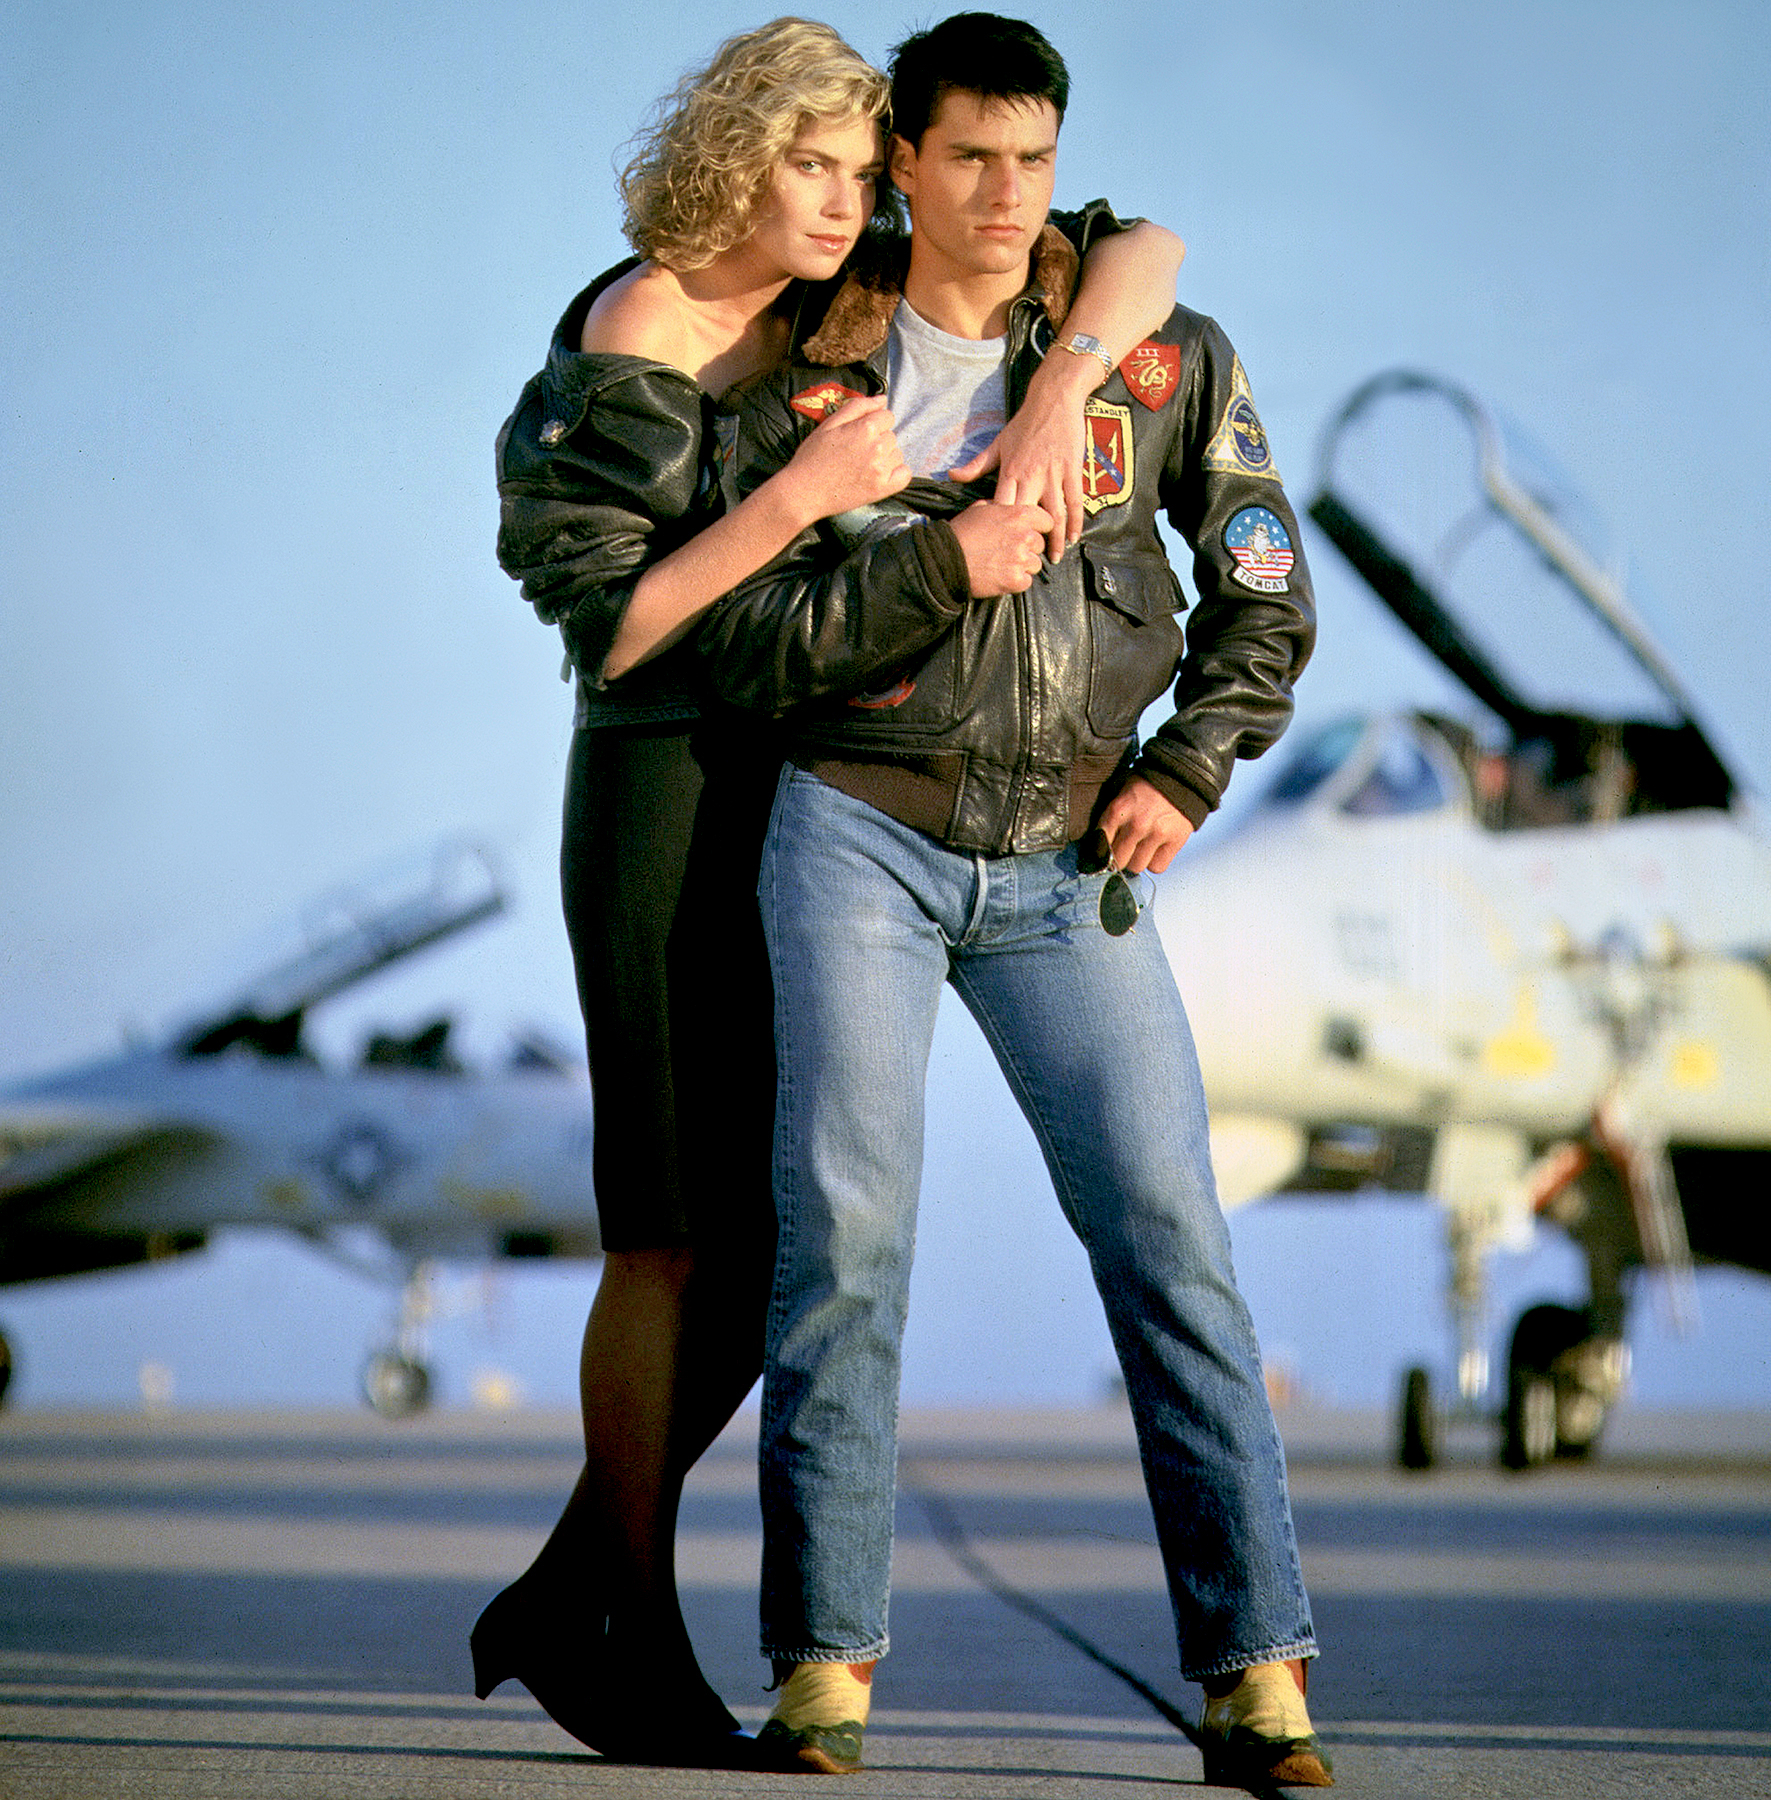 Kelly McGillis and Tom Cruise on the set of Top Gun